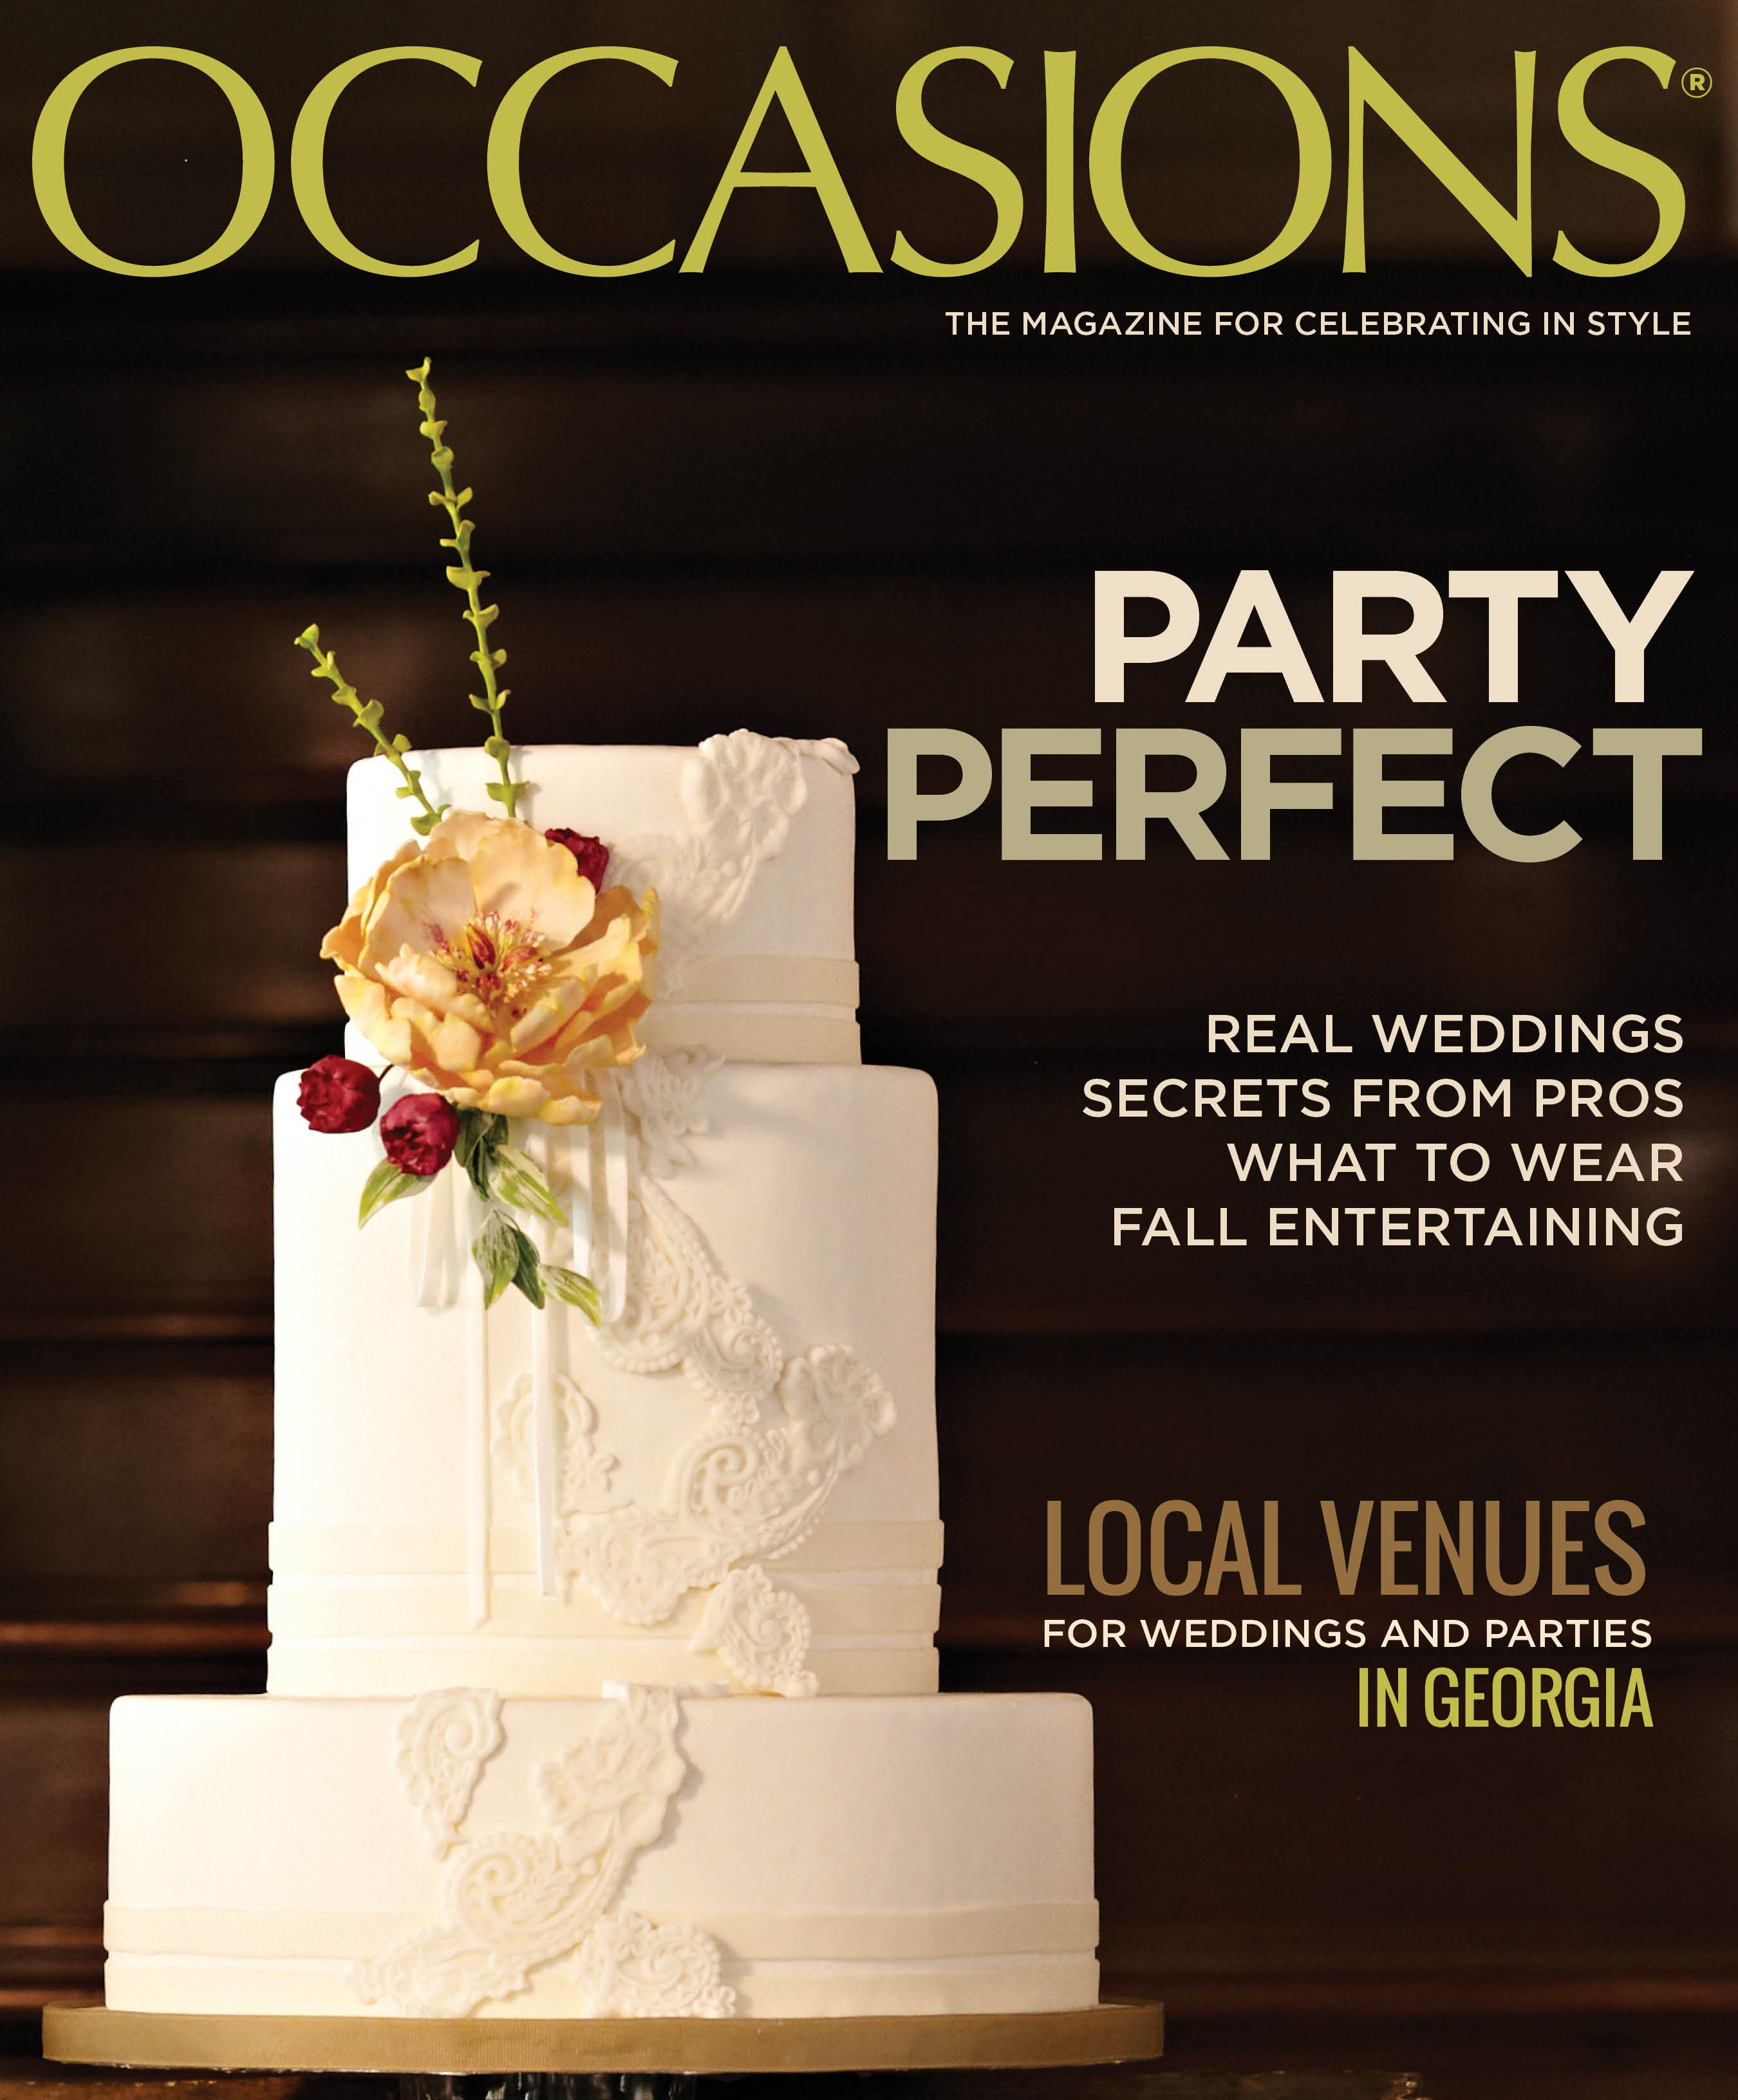 Fall 2012 Occasions Magazine Cover Reveal!